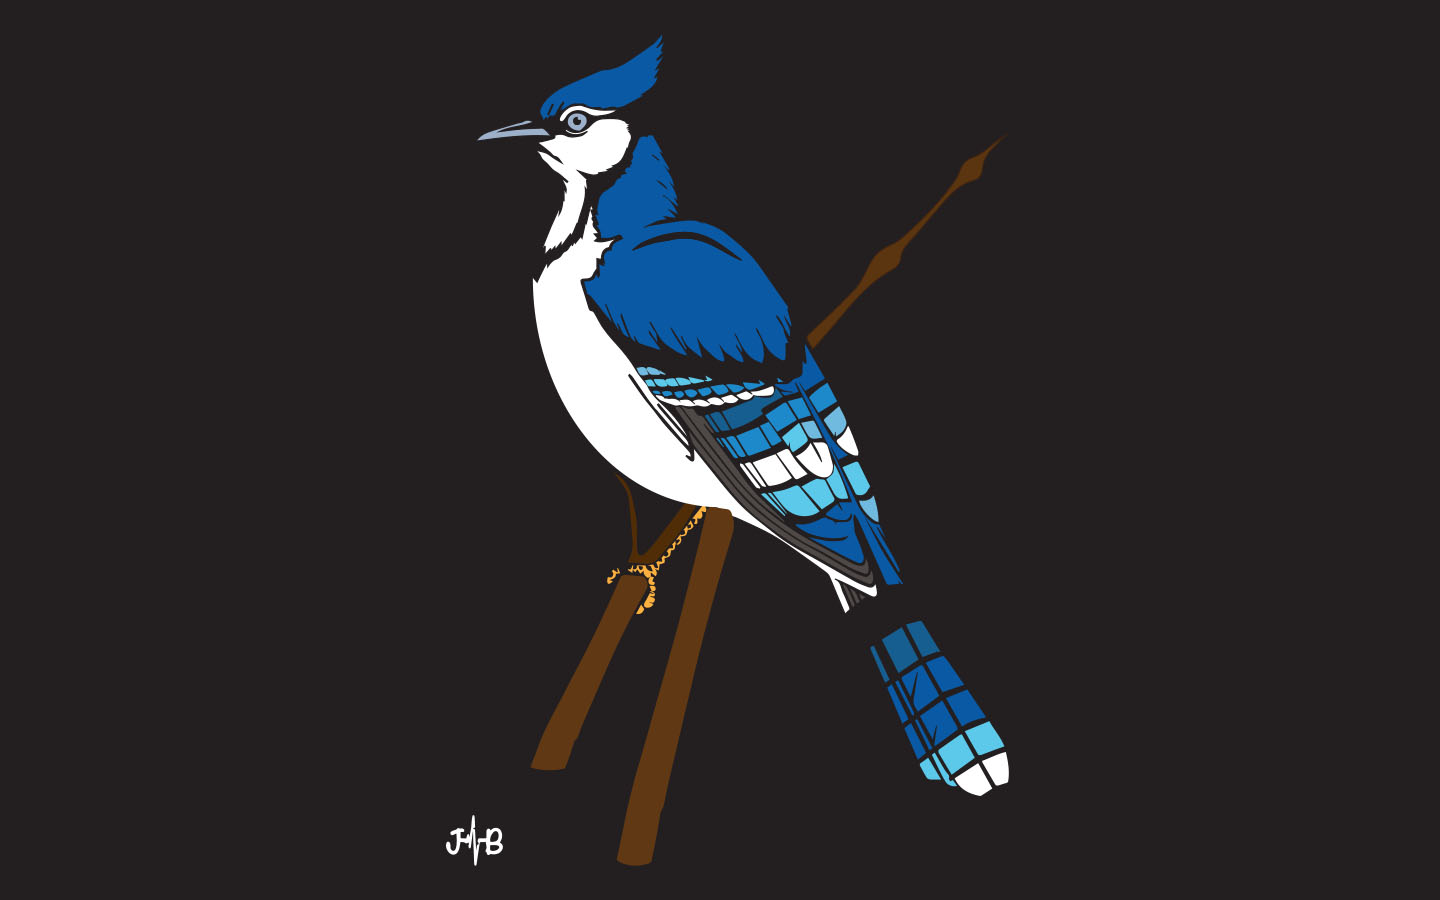 Blue Jay Graphic Design avialable in High quality printed Artworks are avialable